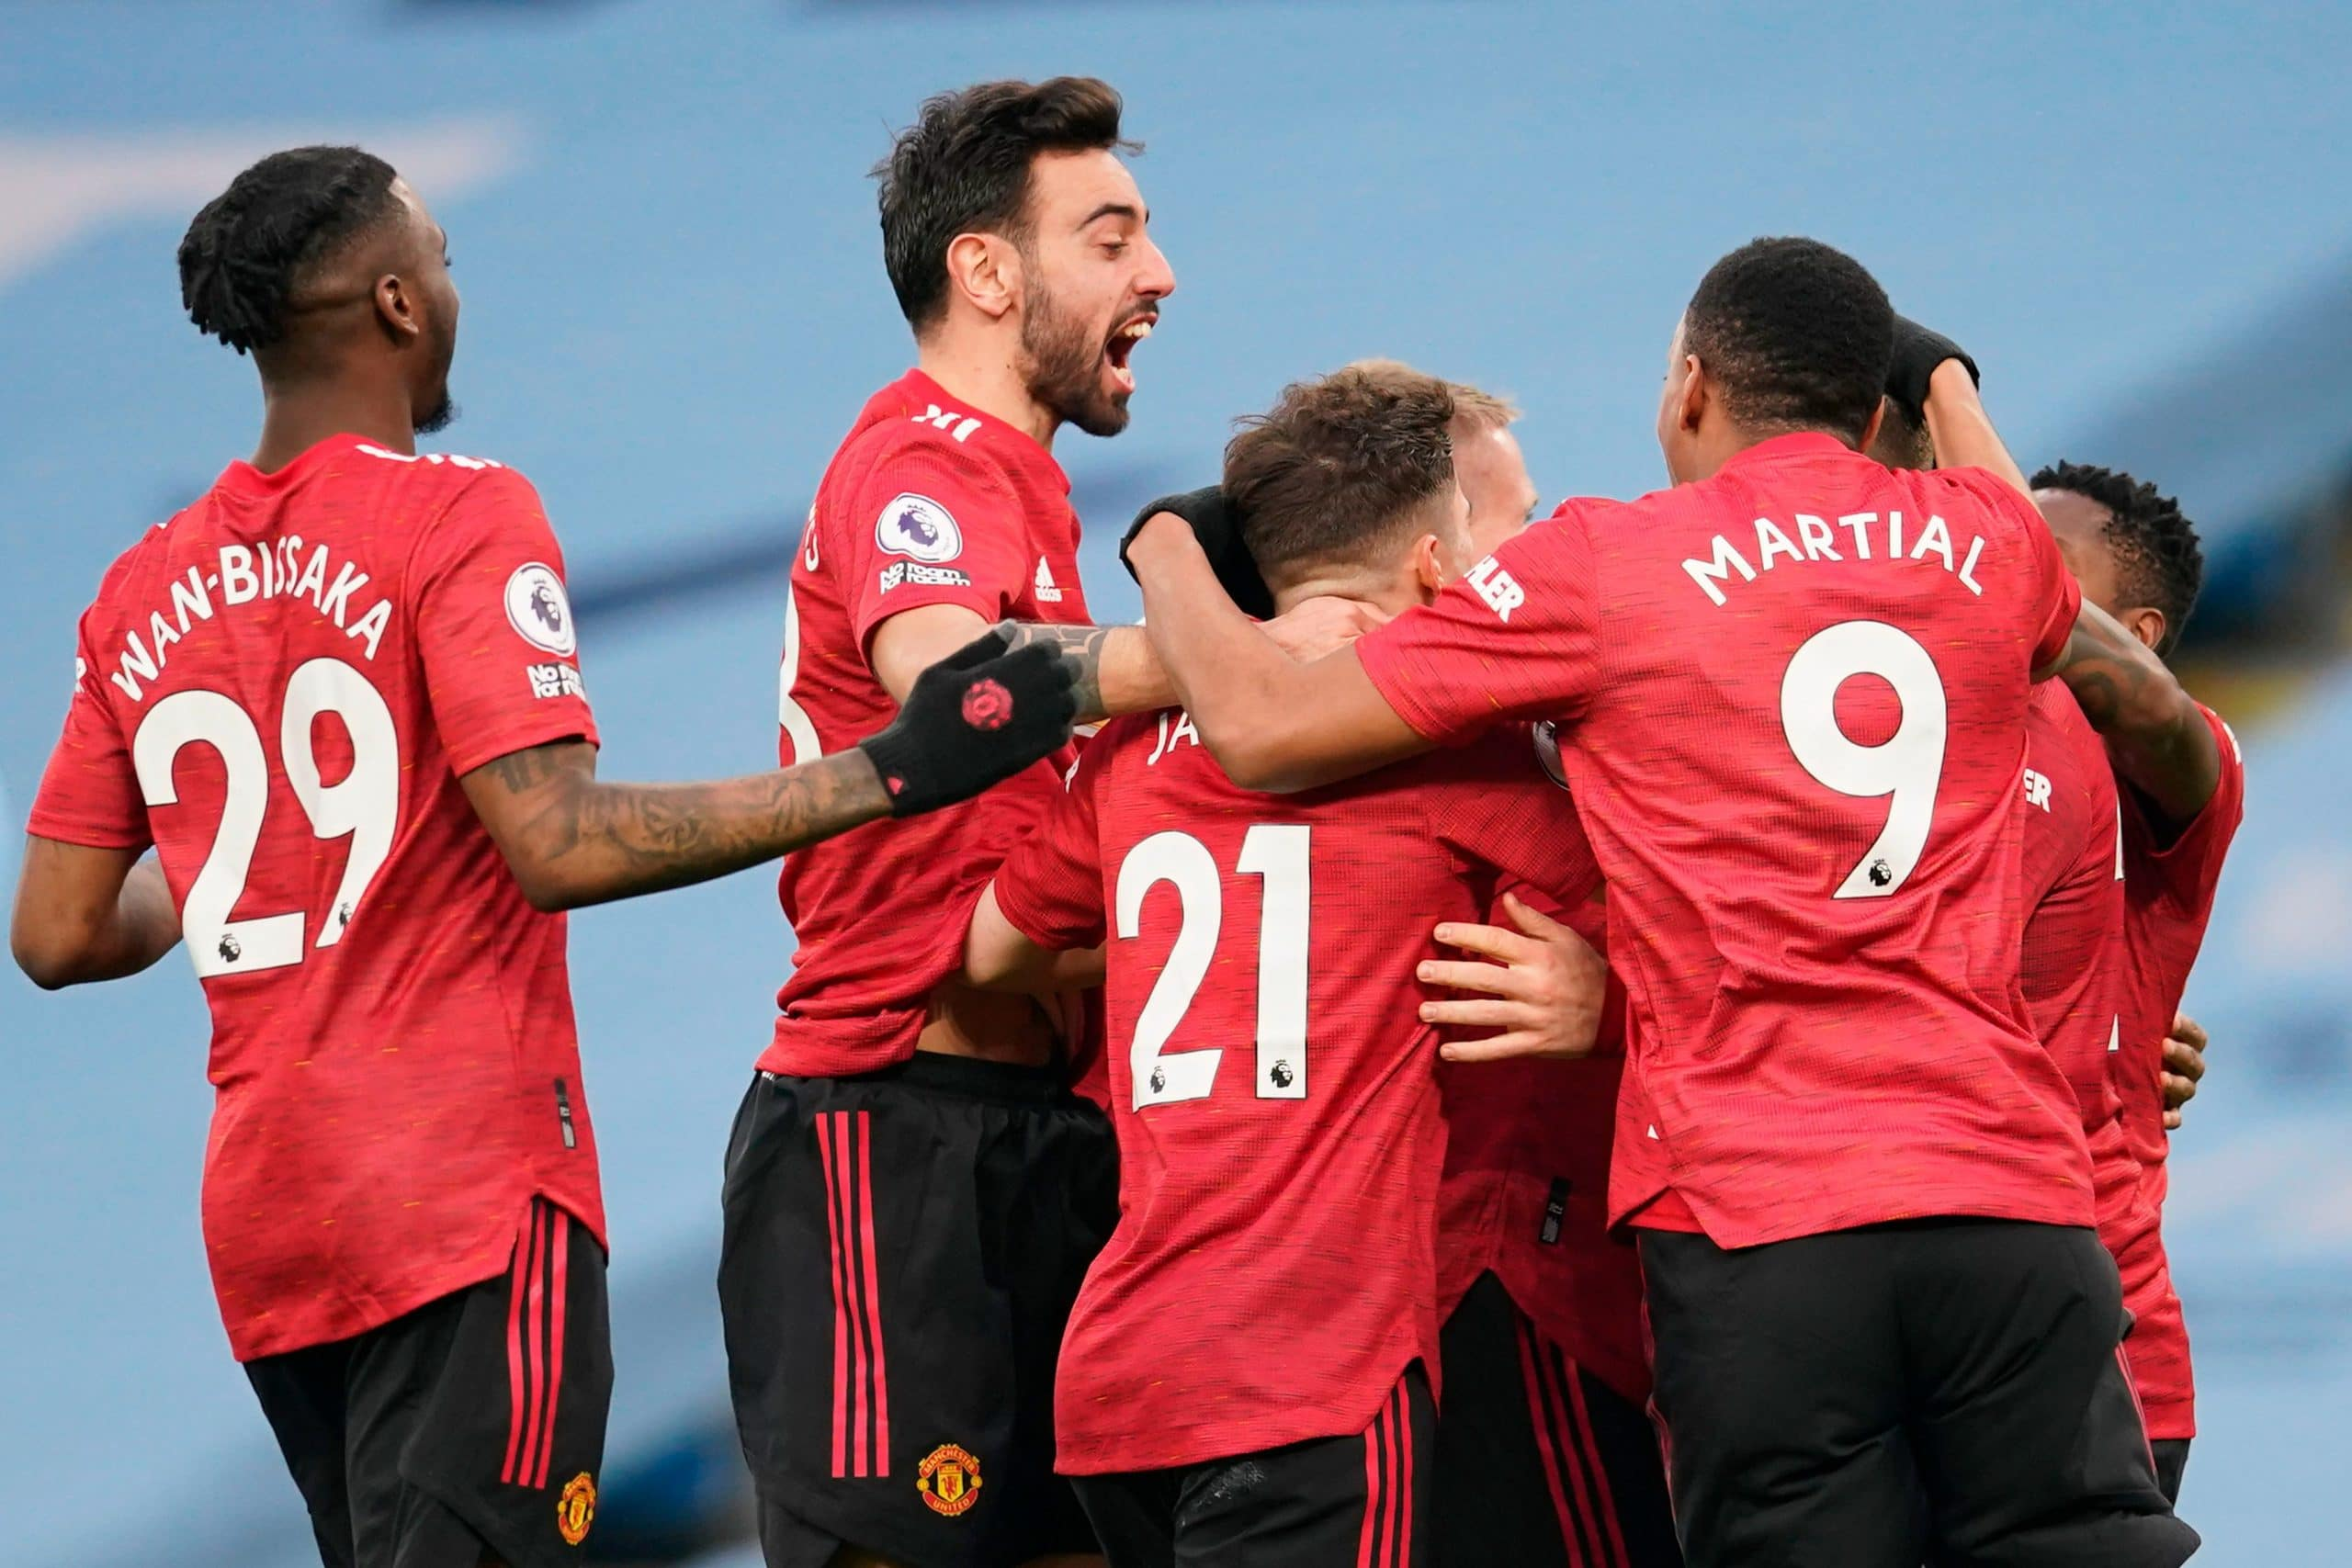 Manchester United Face AC Milan In Europa League Fixture Live On StarTimes